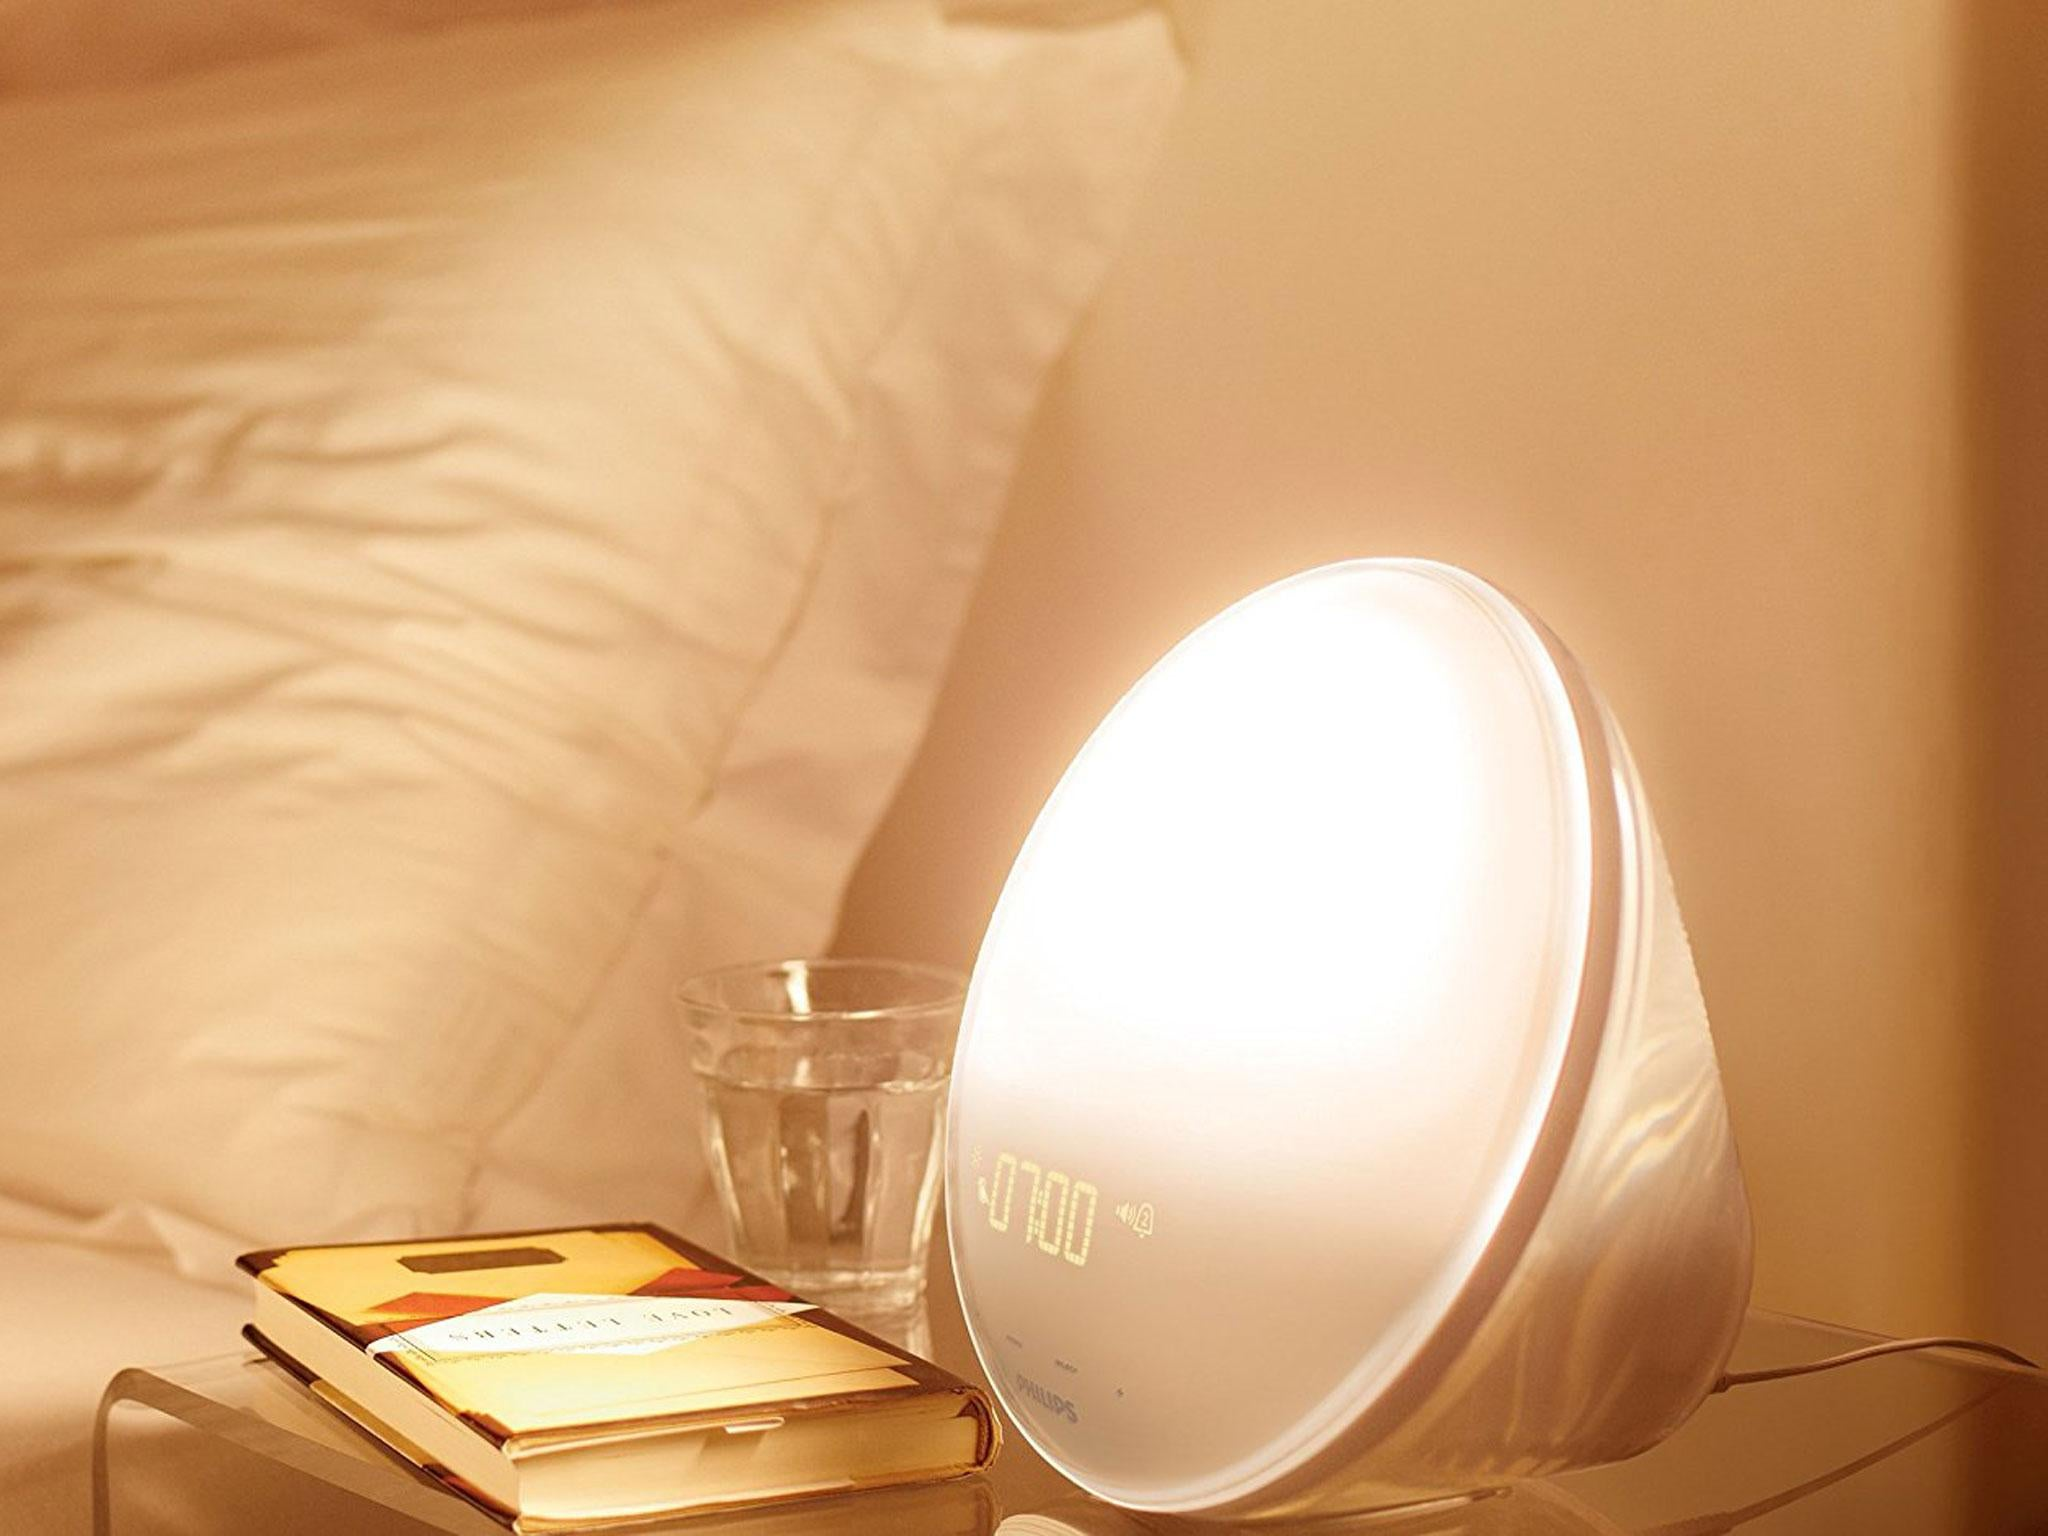 7 Best Wake Up Light Alarm Clocks The Independent Boxes Used For Ceiling Lights Arent Strong Enough To Hold A